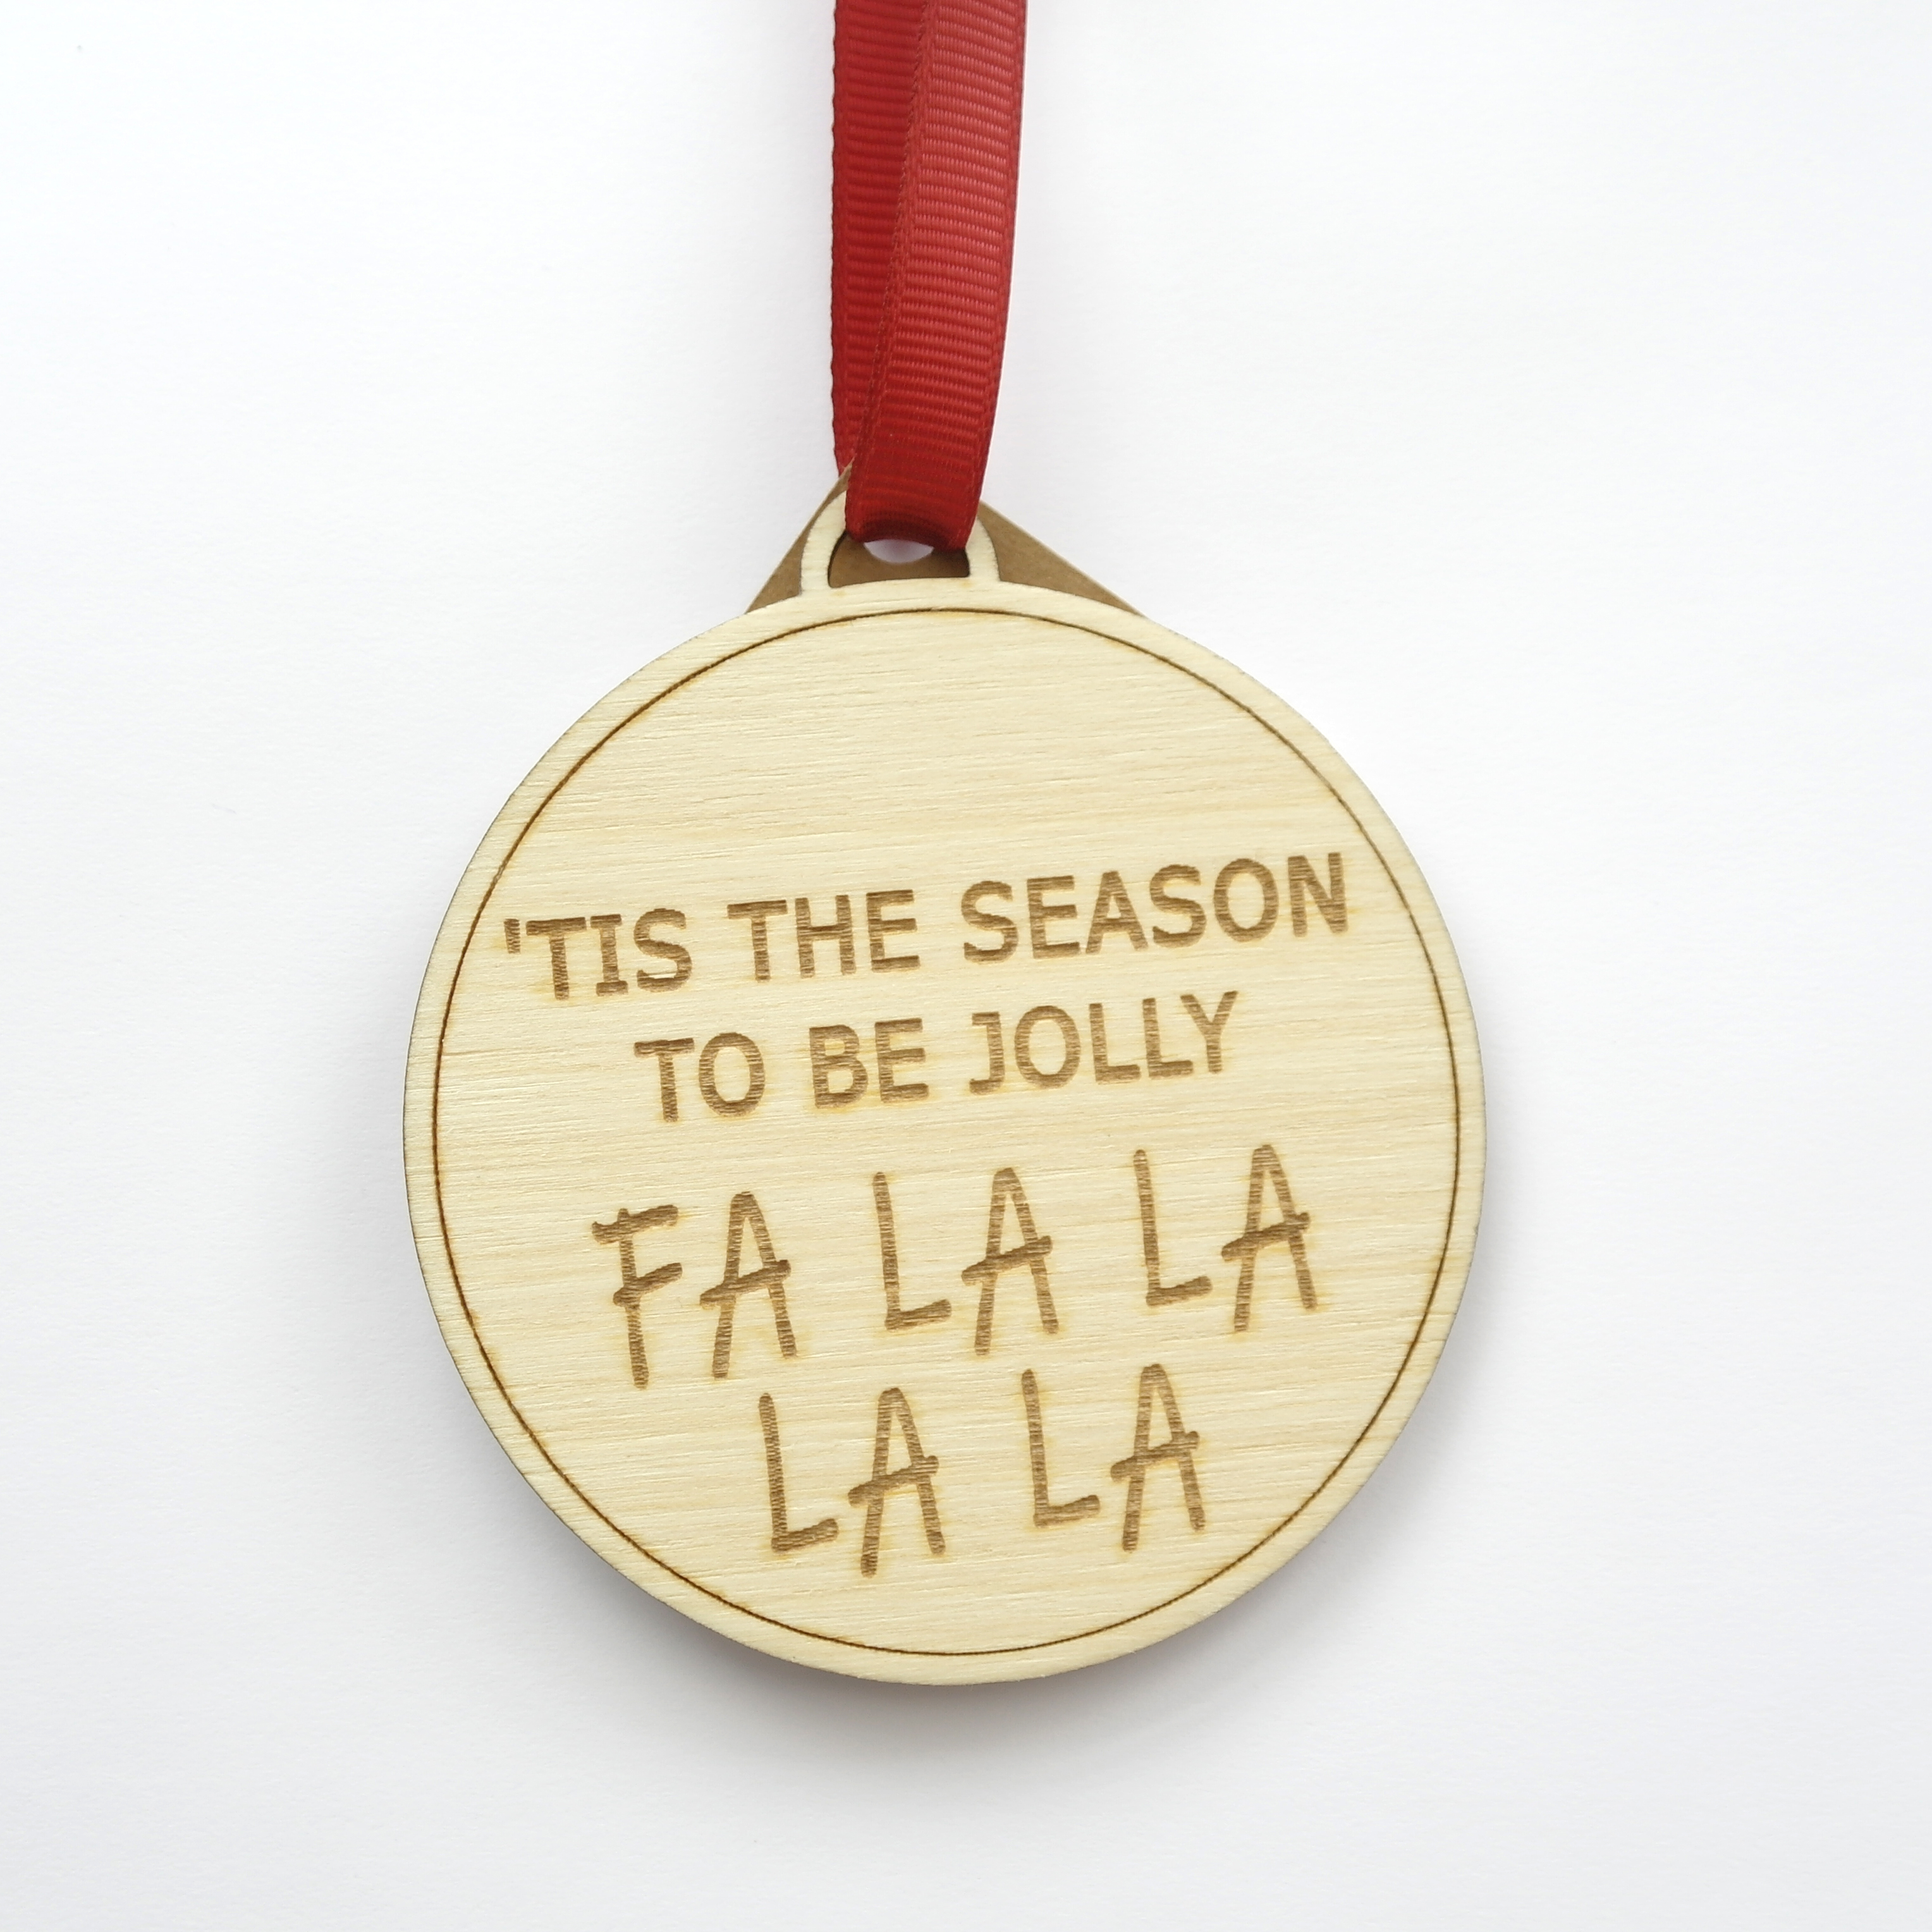 'Tis the Season to be Jolly' Saying Christmas Bauble